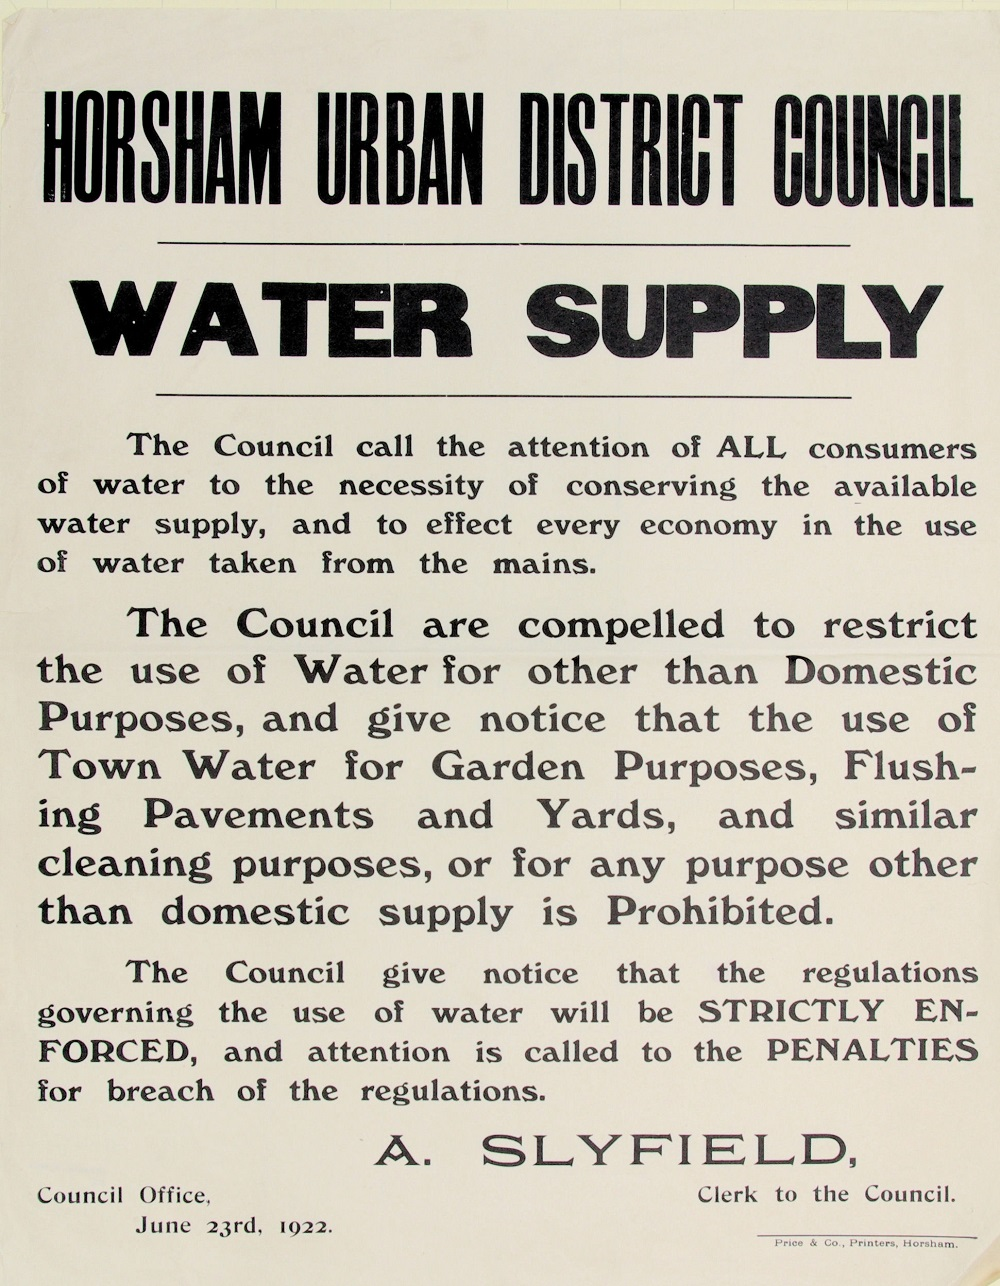 A Horsham Urban District Council notice about the water shortage in 1922